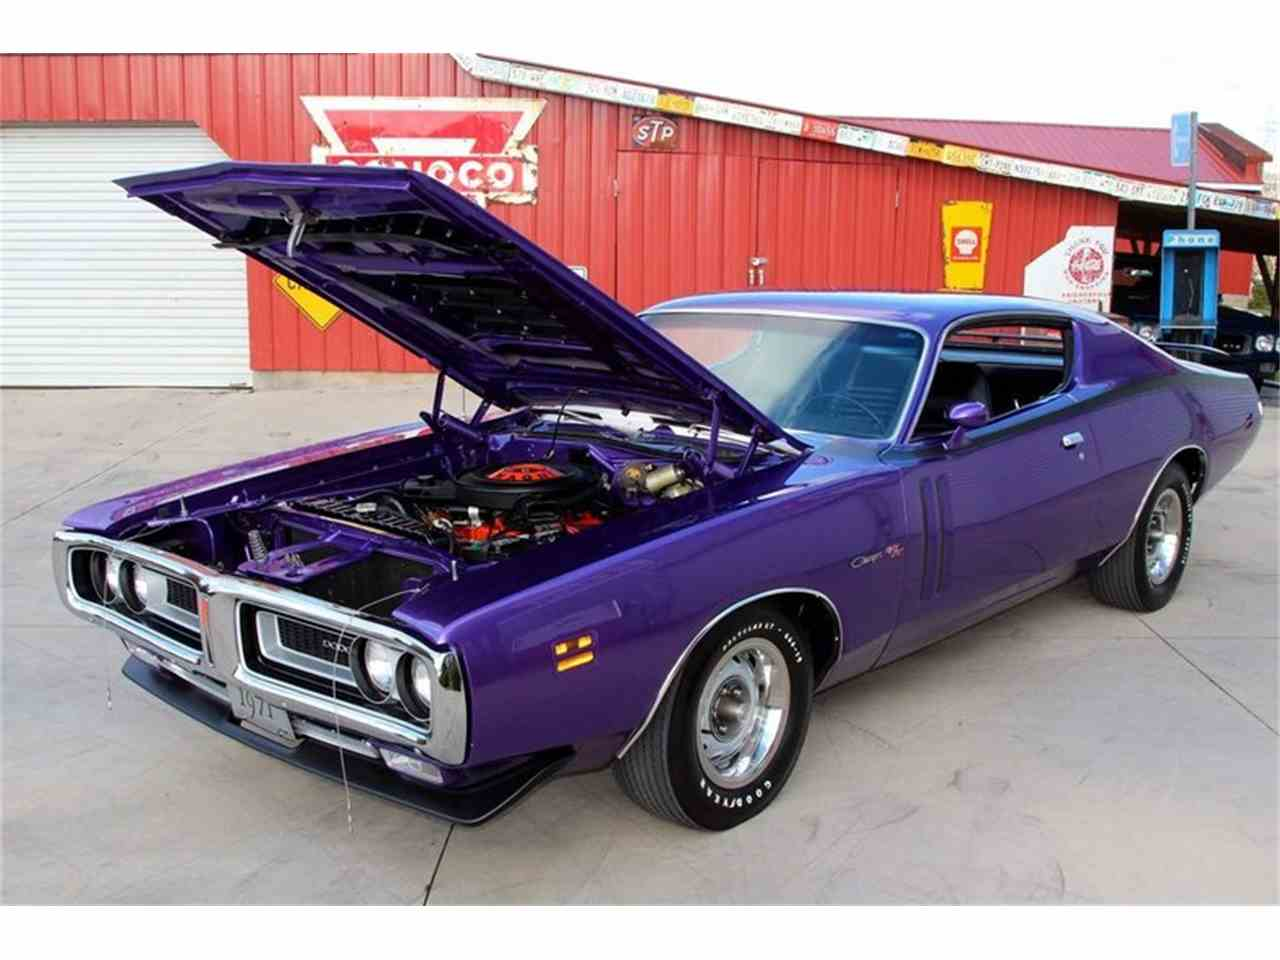 Dodge Dealers In Tennessee >> 1971 Dodge Charger R/T for Sale | ClassicCars.com | CC-1052802